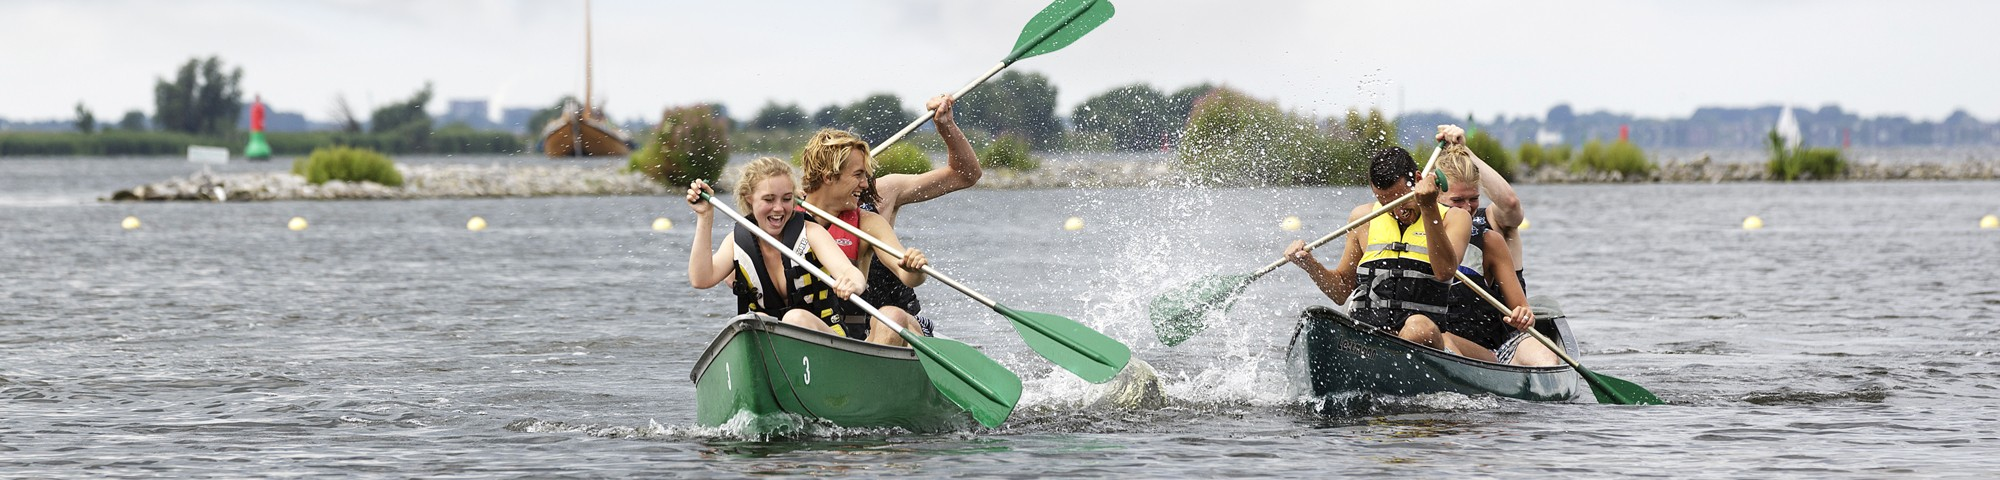 Watersport | Watersport Flevoland | Eemhof Watersport & Beachclub